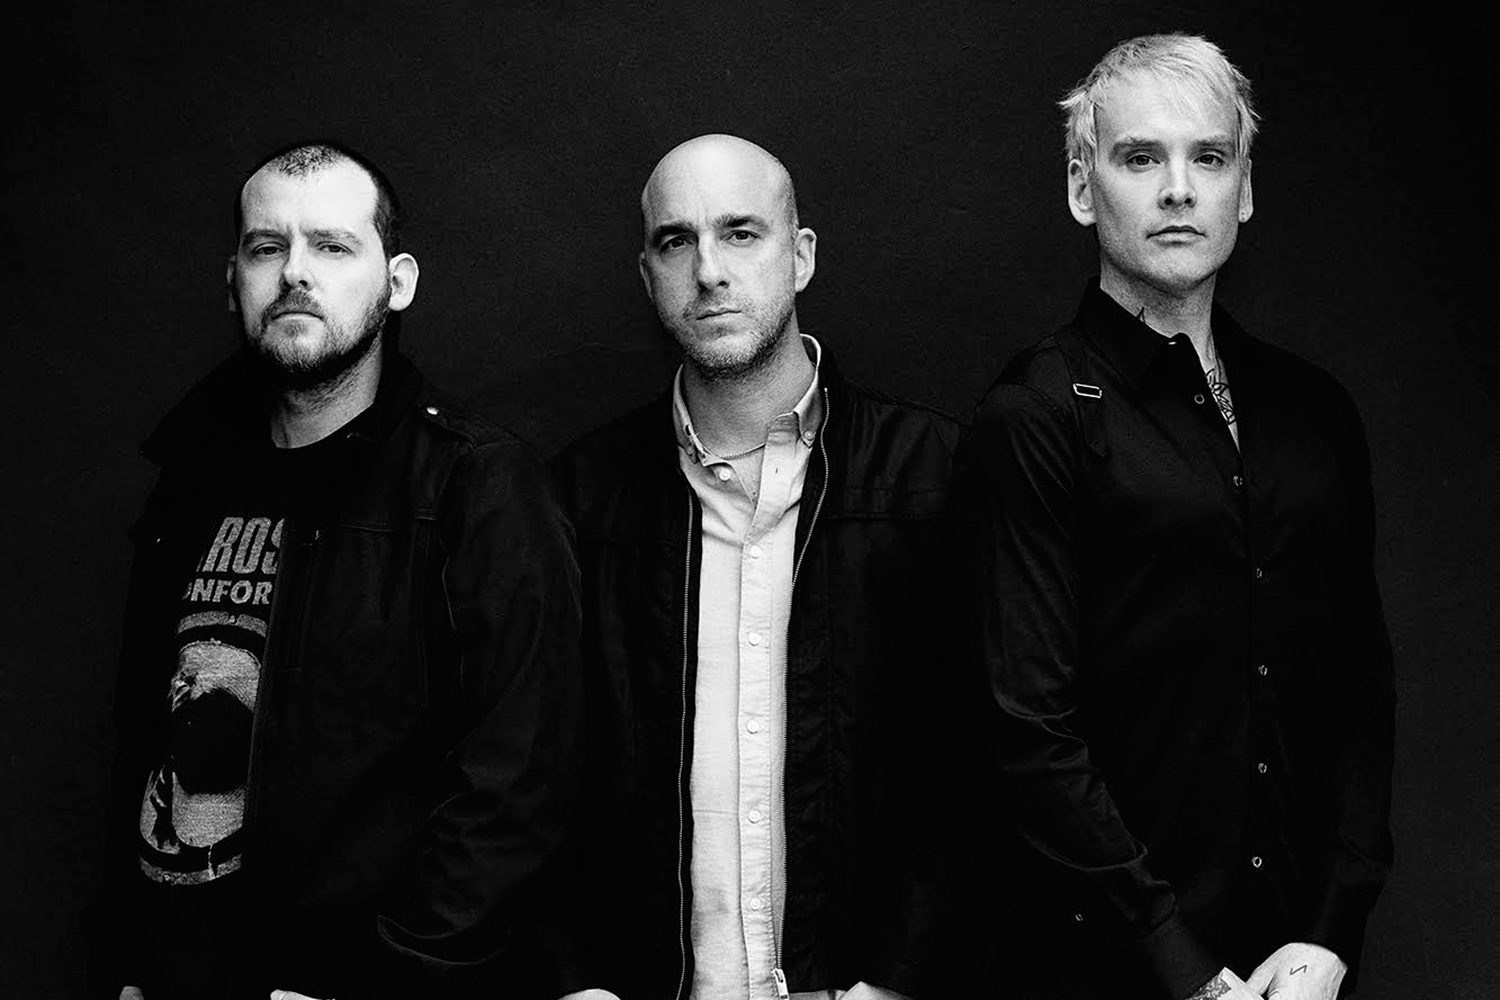 Check out the title-track from Alkaline Trio's new album, 'Is This Thing Cursed?'